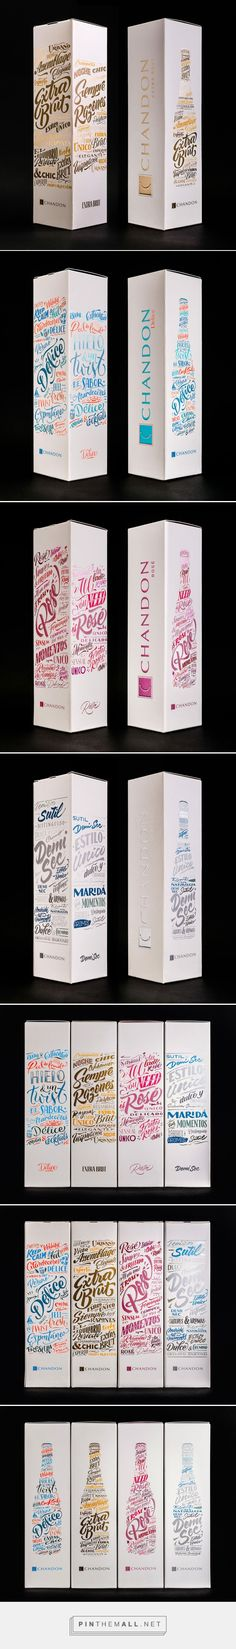 CHANDON packaging lineup 2015 / 2016 on Behance by Yani & Guille, Buenos Aires, Argentina curated by Packaging Diva PD. Lettering design for the packaging lineup of Chandon Argentina, 2015 / 2016 edition. Art Direction, Packaging, Typography.